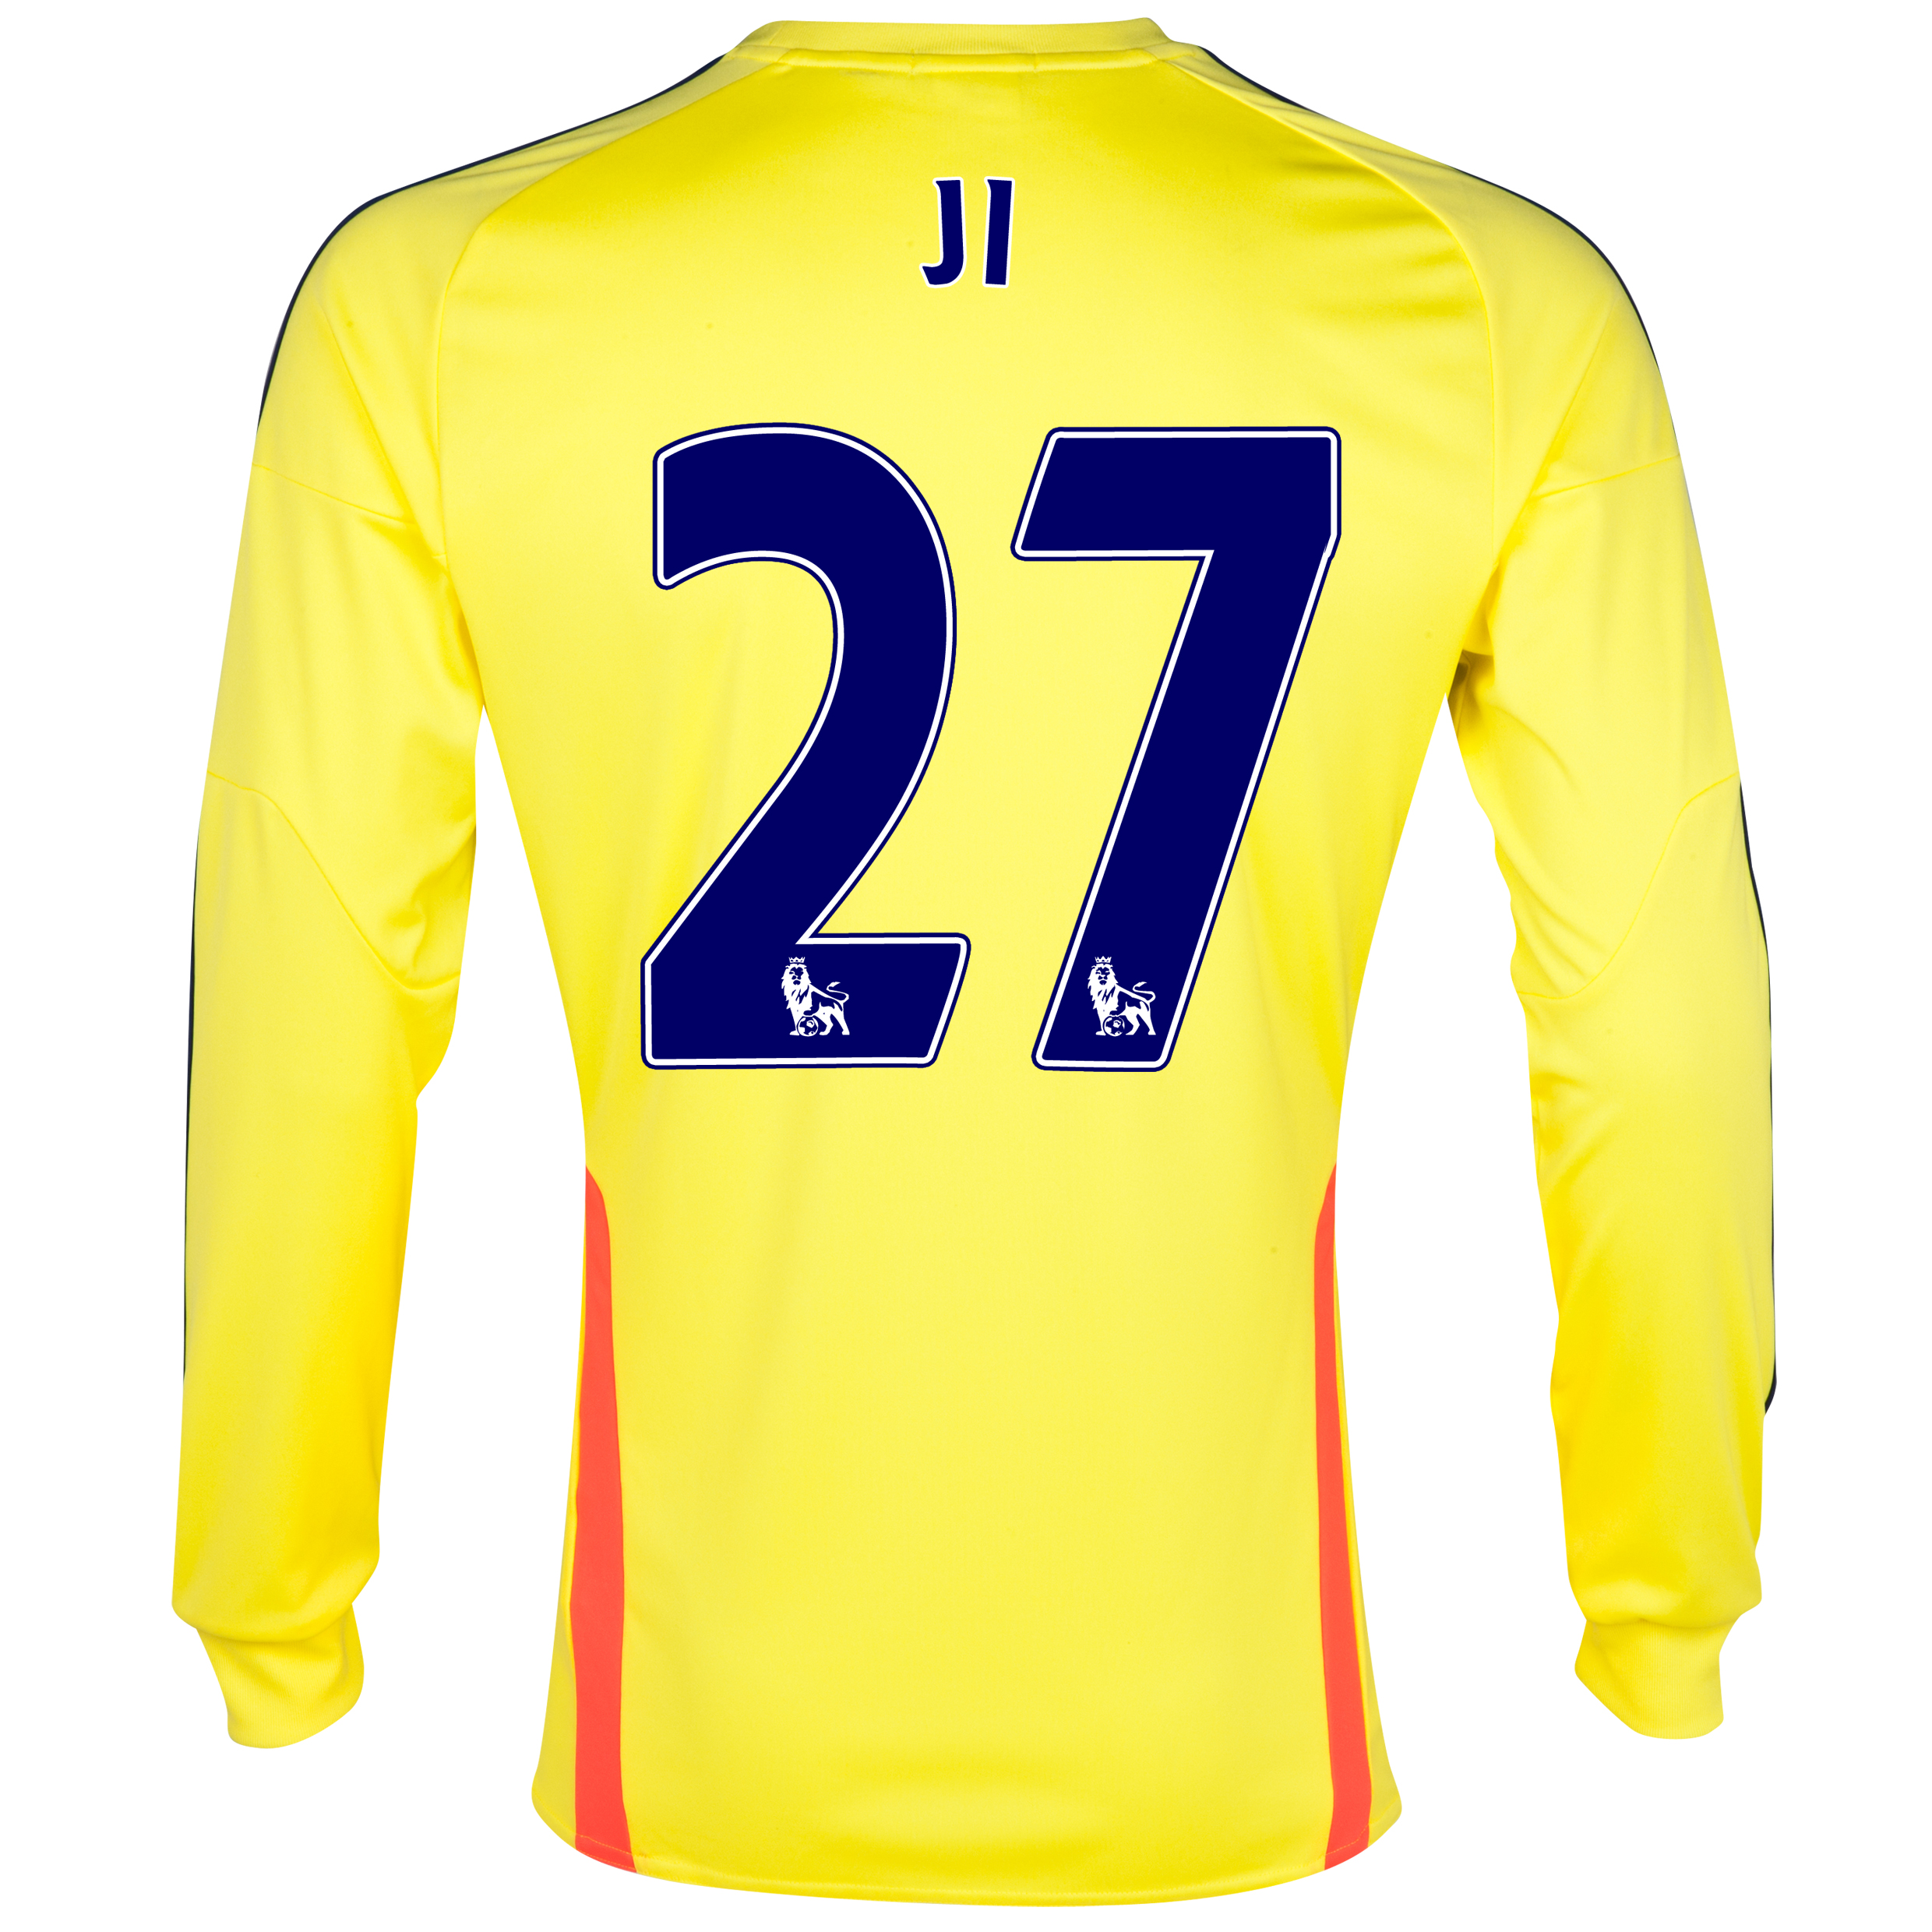 Sunderland Away Shirt 2013/14 - Long Sleeved with Ji 27 printing